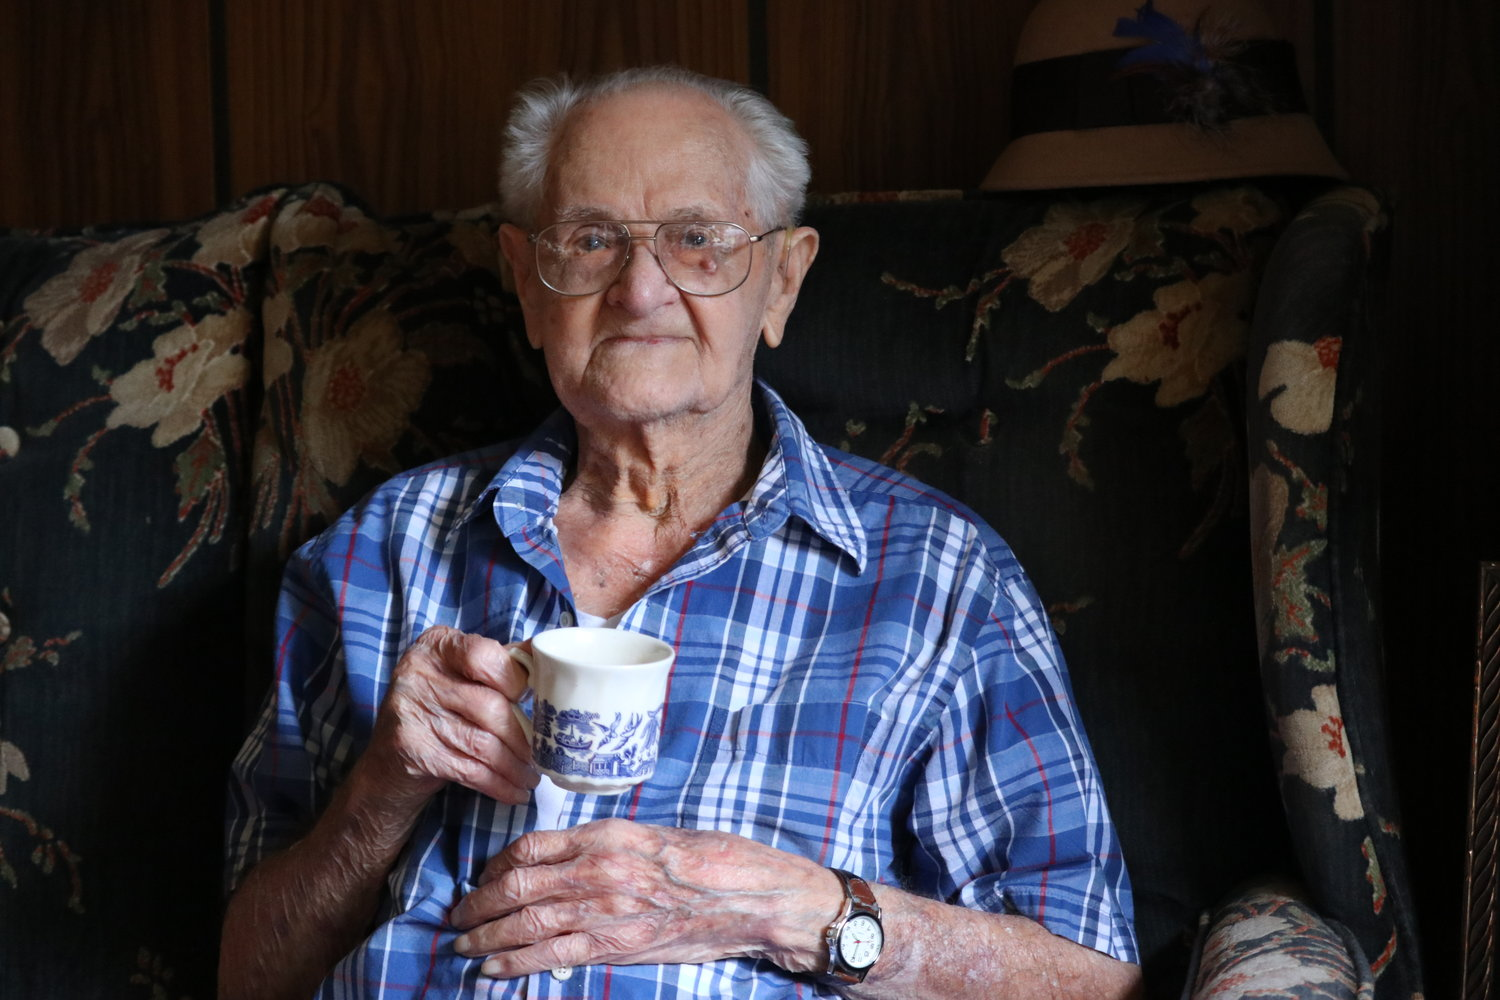 At 102, Bob Hester still chews tobacco and drinks coffee throughout the day.